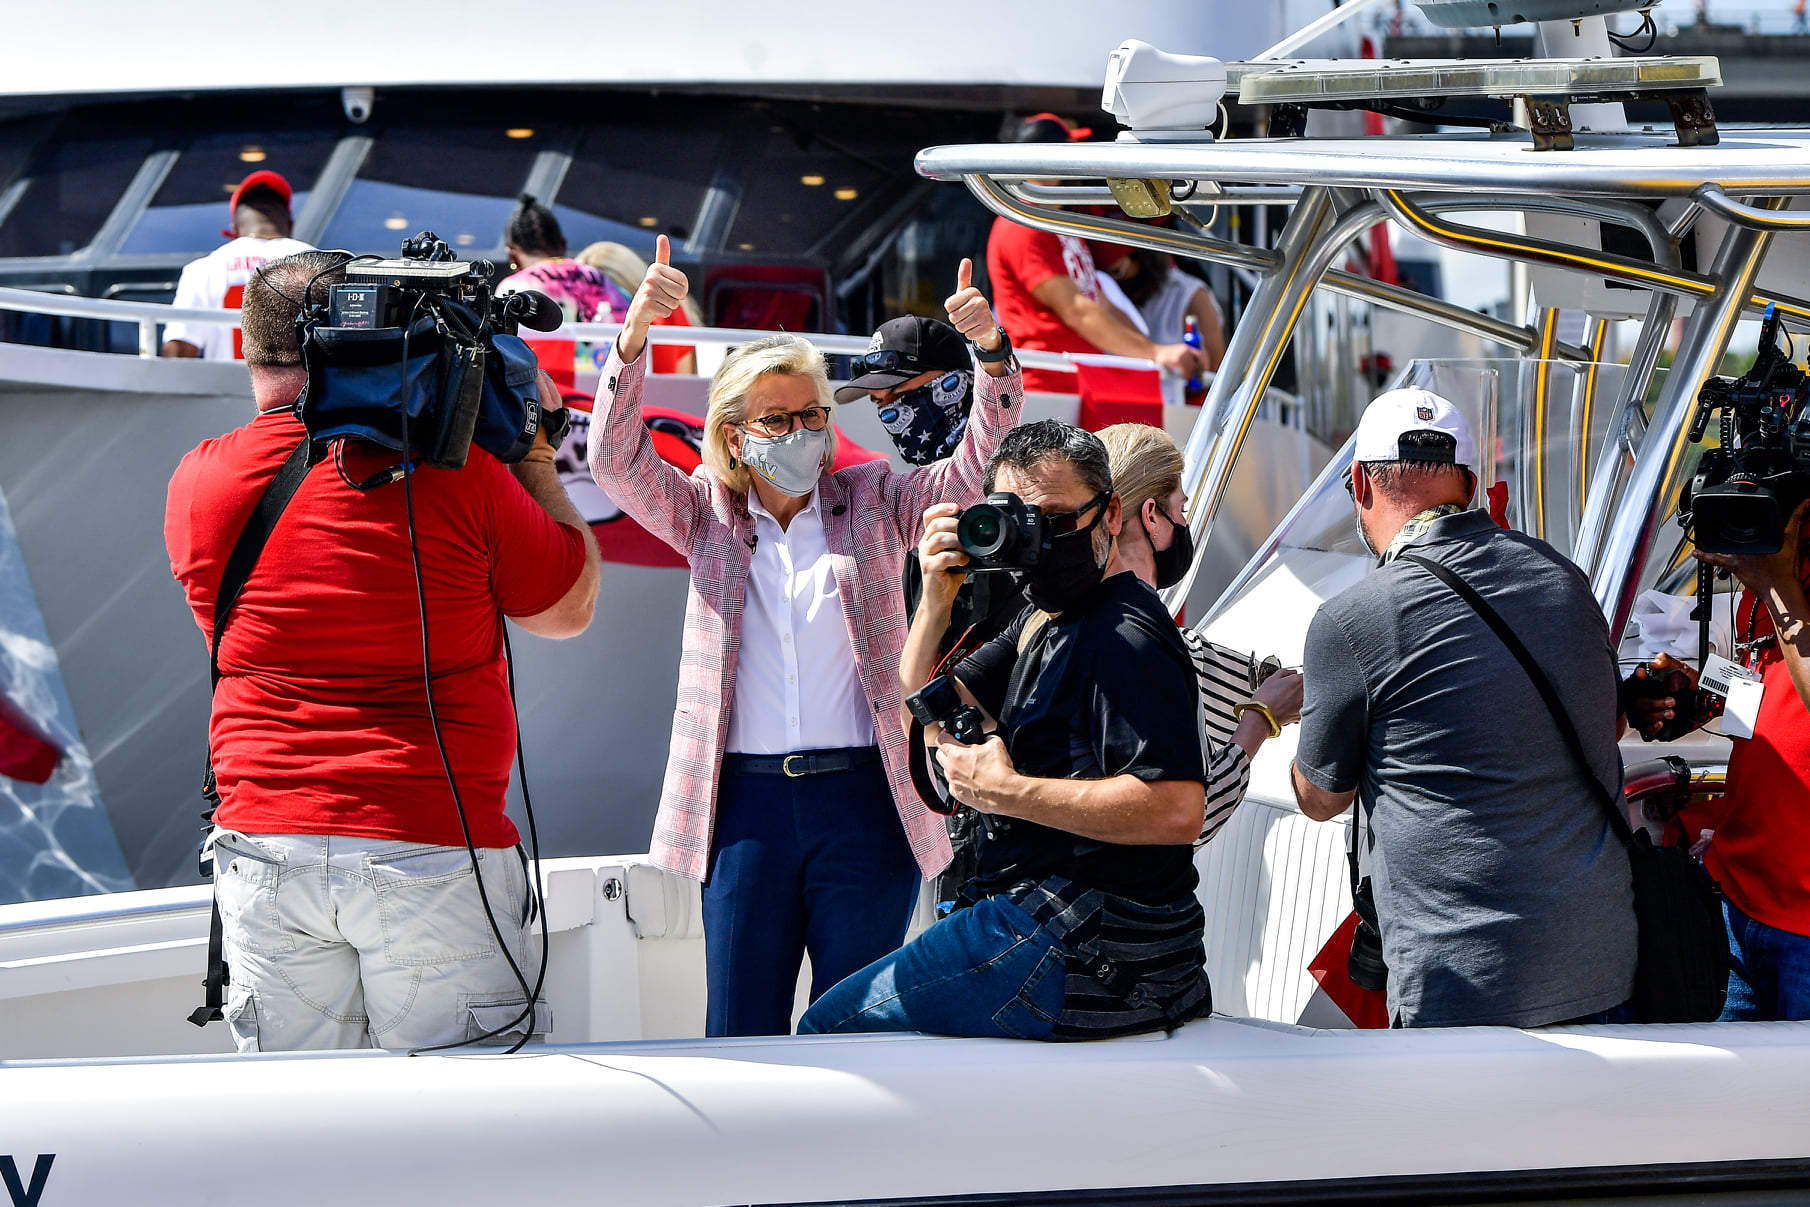 Tampa Mayor Jane Castor along with fans celebrate Tampa Bay Buccaneers Super Bowl LV win with a boat parade, Wednesday, February 10, 2021. (Photo by Harry Castiblanco / Florida National News)